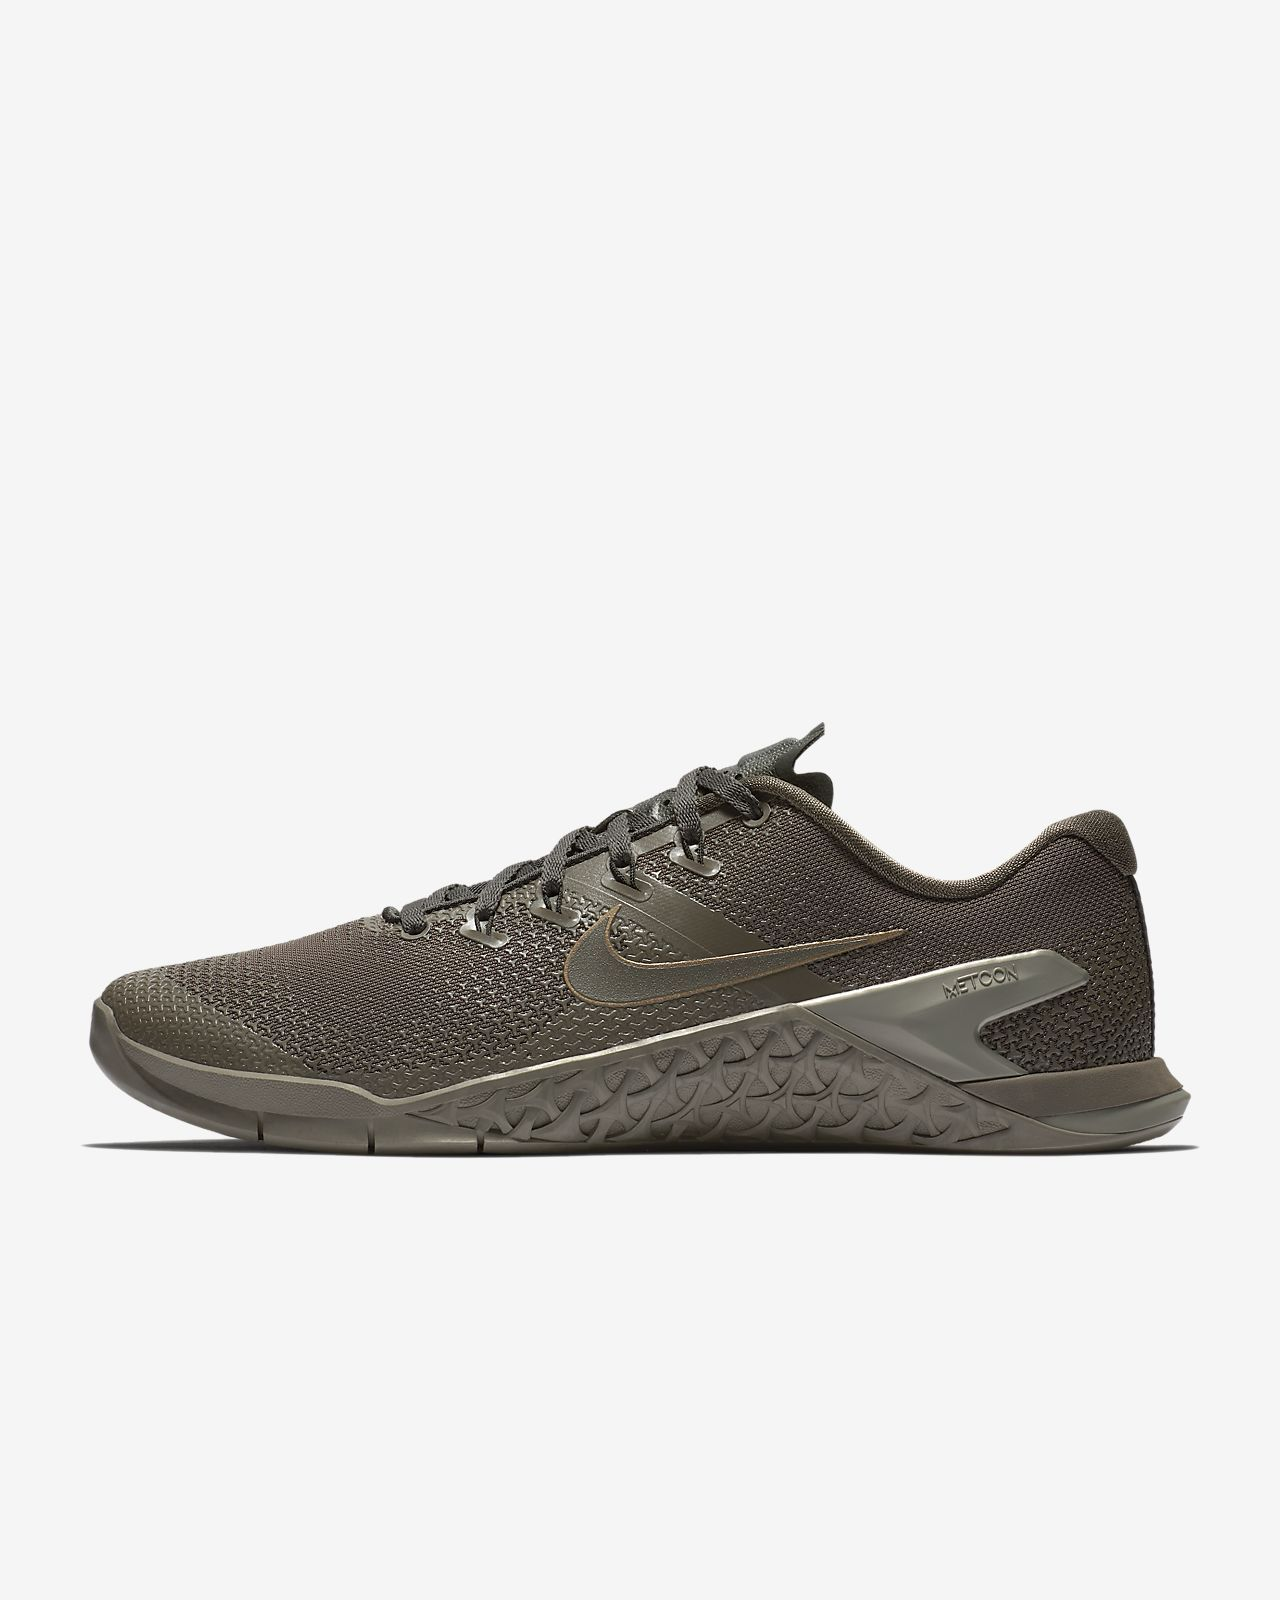 bdbb7f633355 Nike Metcon 4 Viking Quest Men s Training Shoe